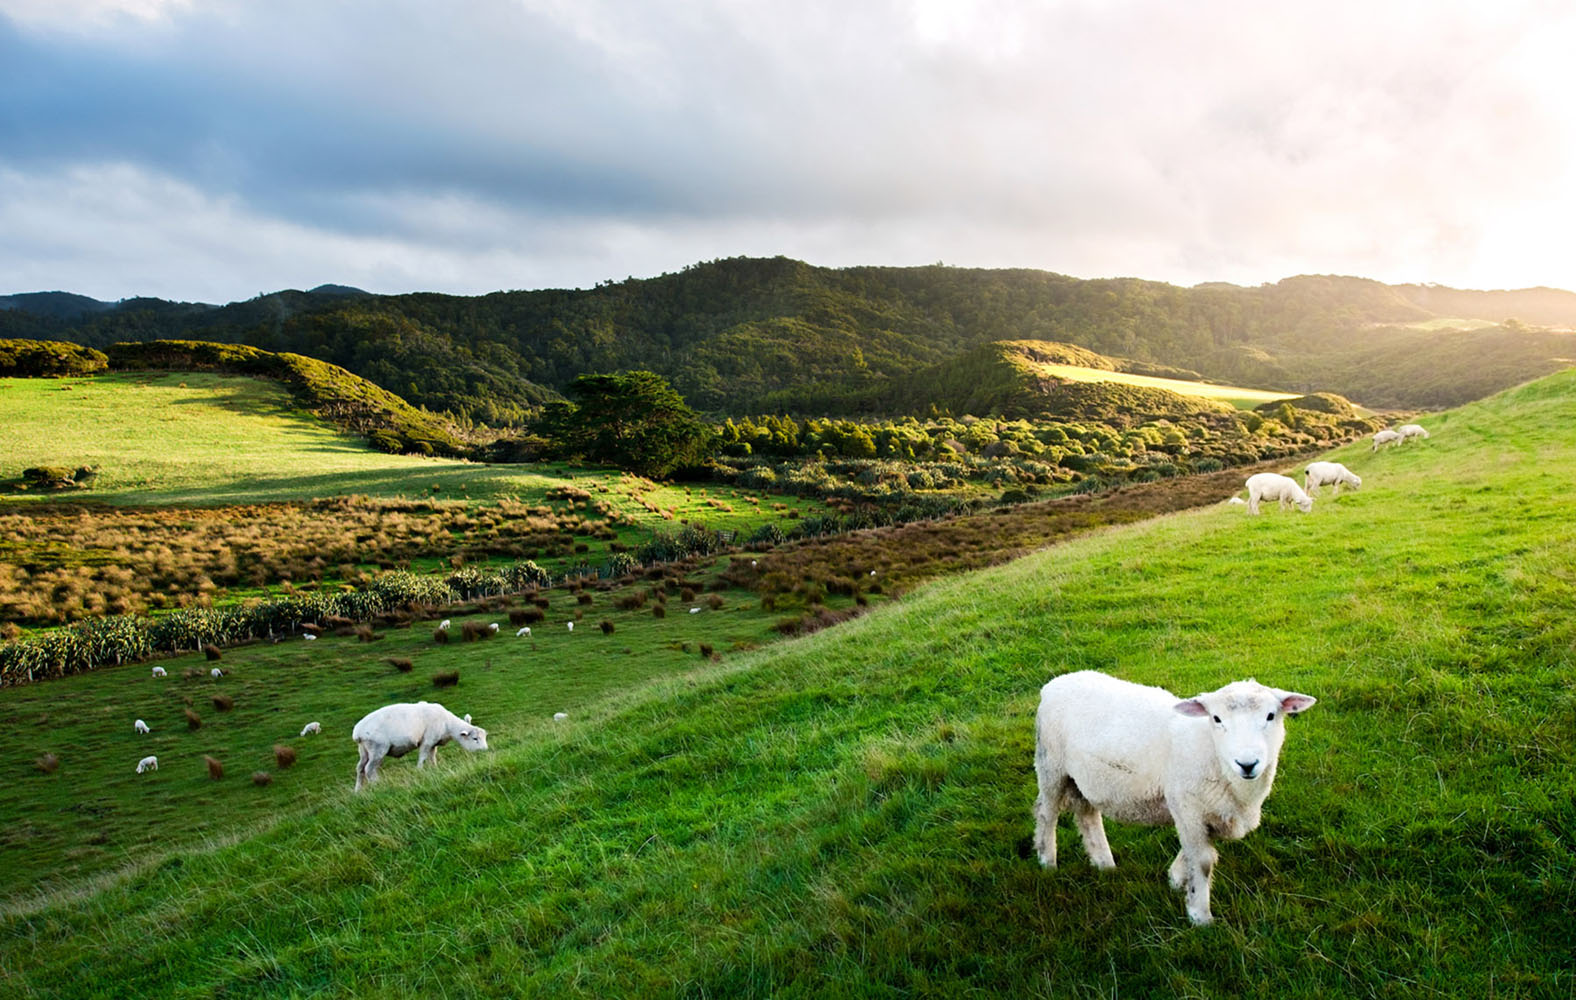 Sheep in a field in New Zealand.